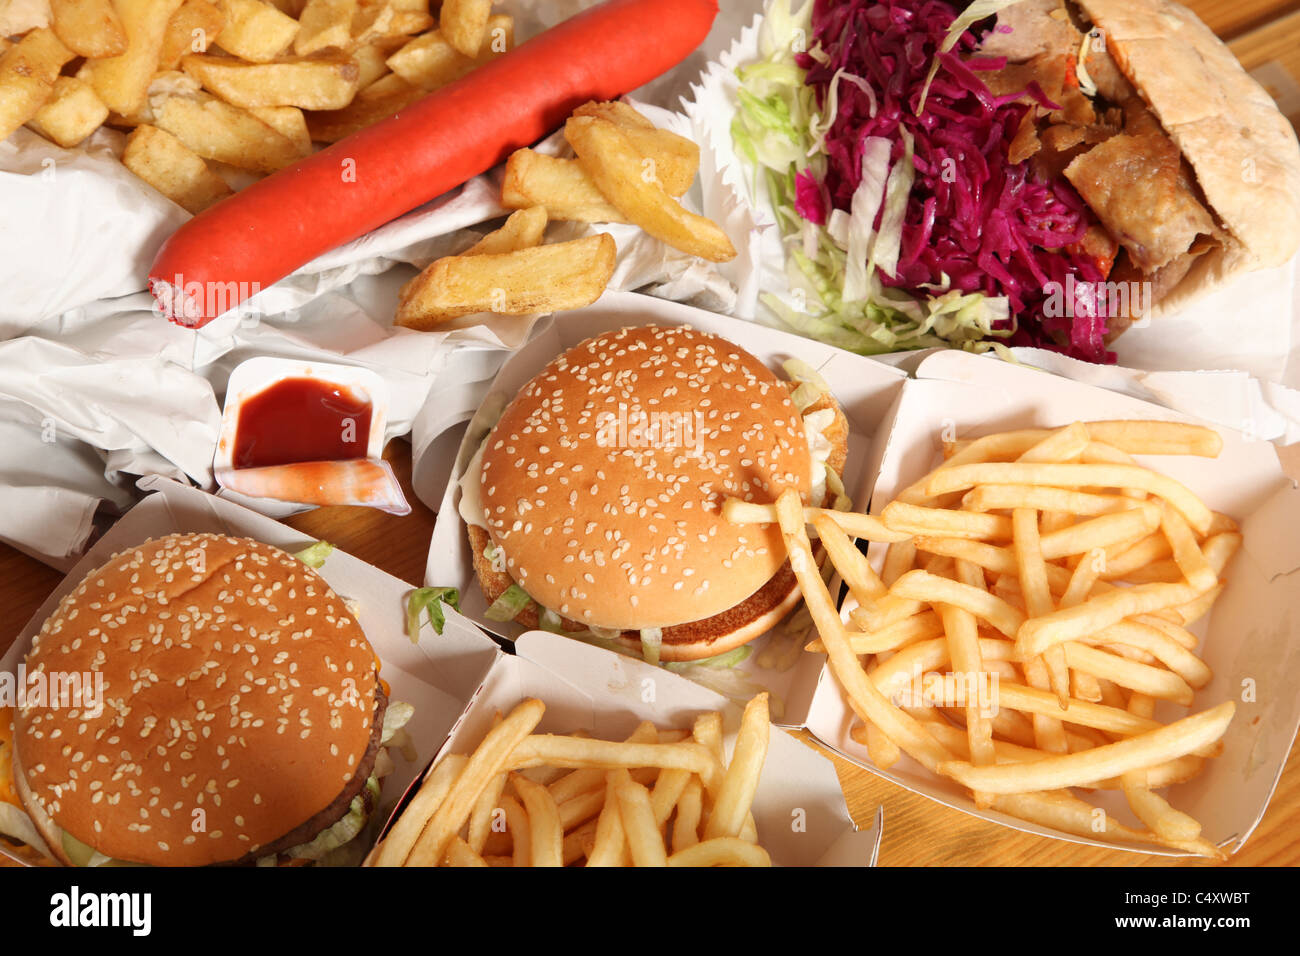 Hamburgers, kebab, frites et autres aliments frits gras malsains. Photo Stock